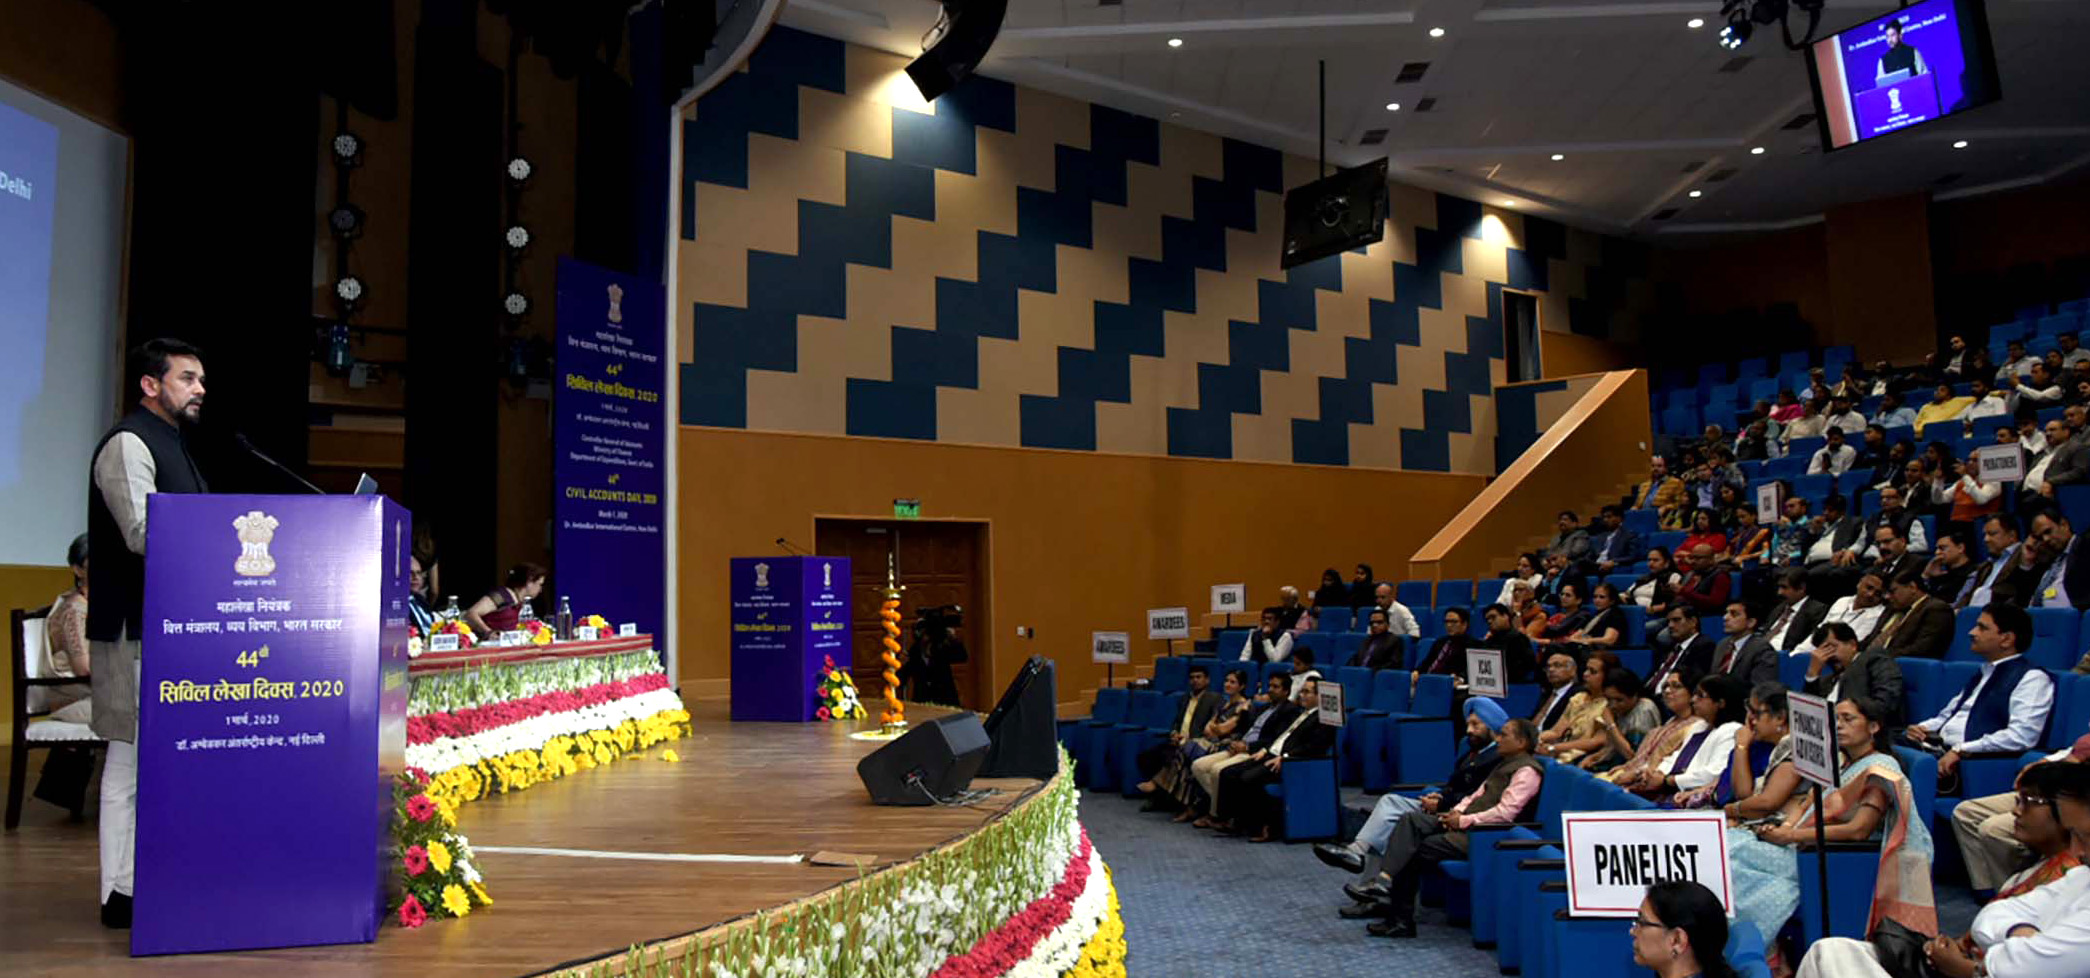 The Minister of State for Finance and Corporate Affairs, Shri Anurag Singh Thakur delivering the valedictory address at the 44th Civil Accounts Day, in New Delhi on March 01, 2020.